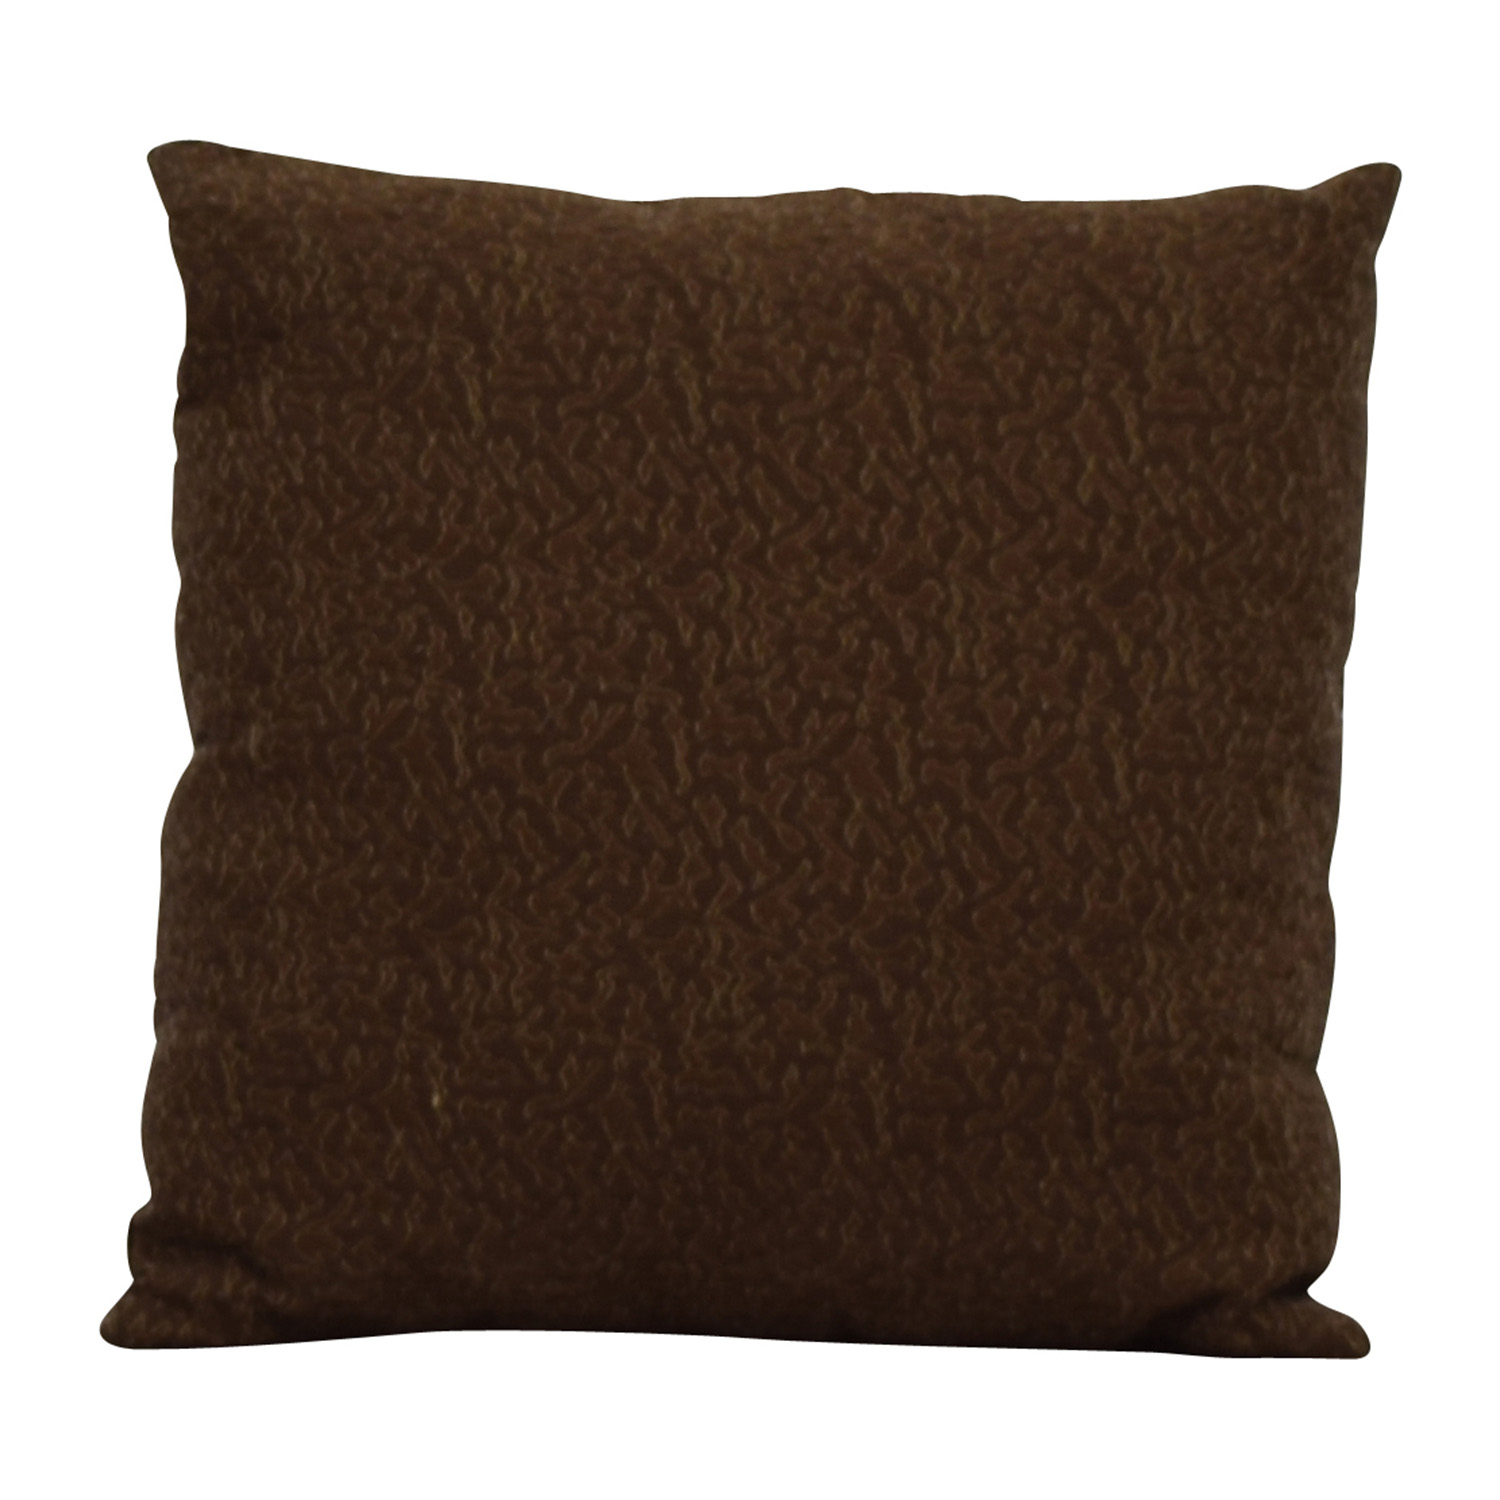 buy Two-toned Brown Toss Pillow Decor